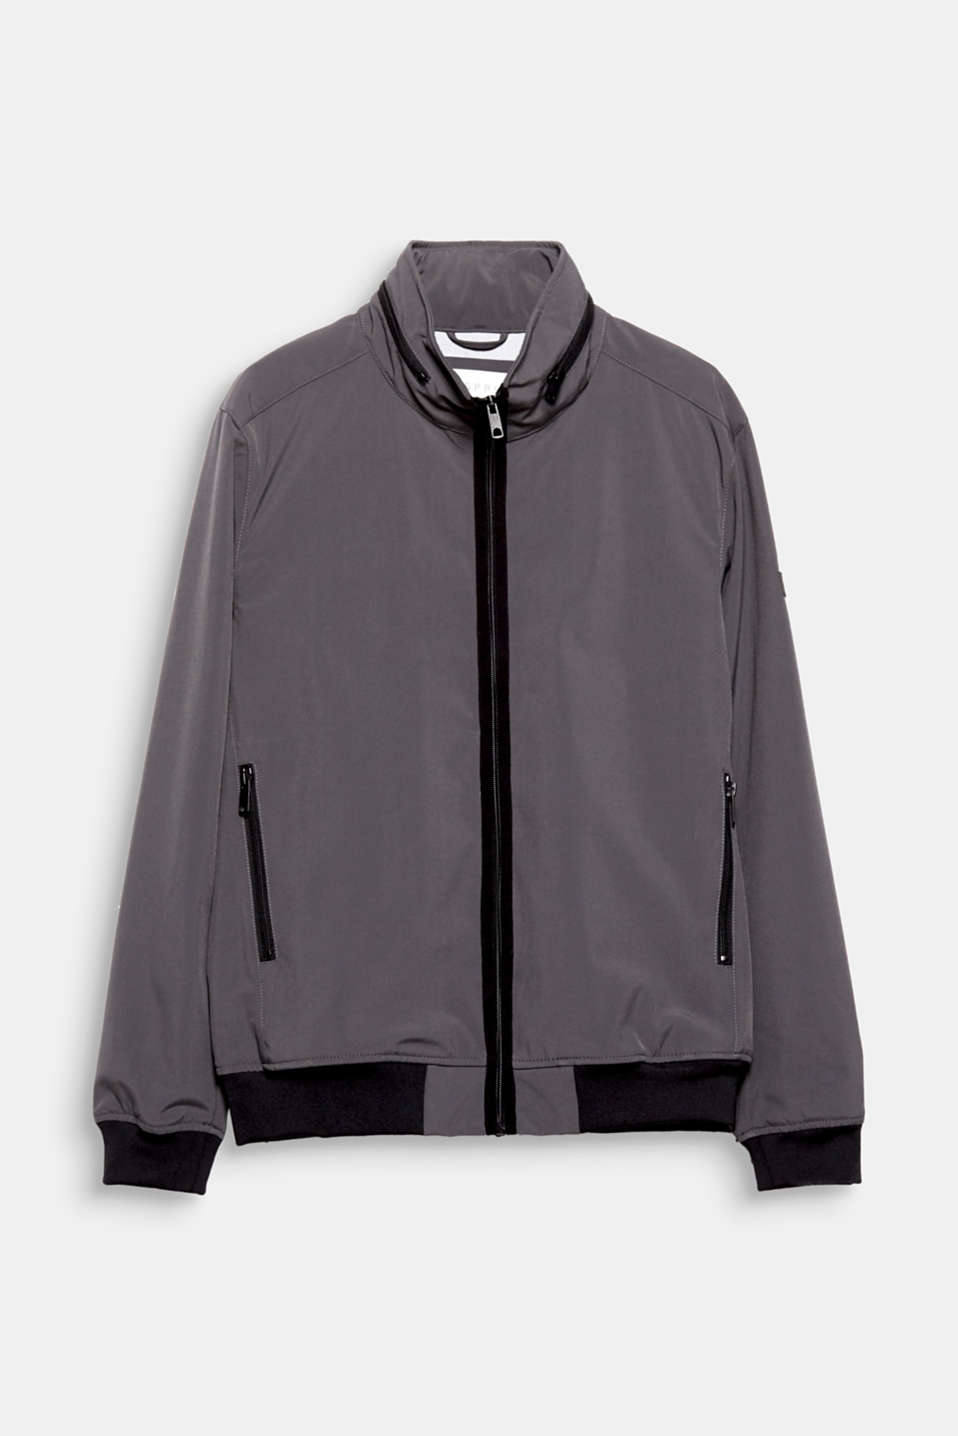 Trend: athleisure - performance for sports, style for time off: this nylon jacket with contrasting coloured cuffs.